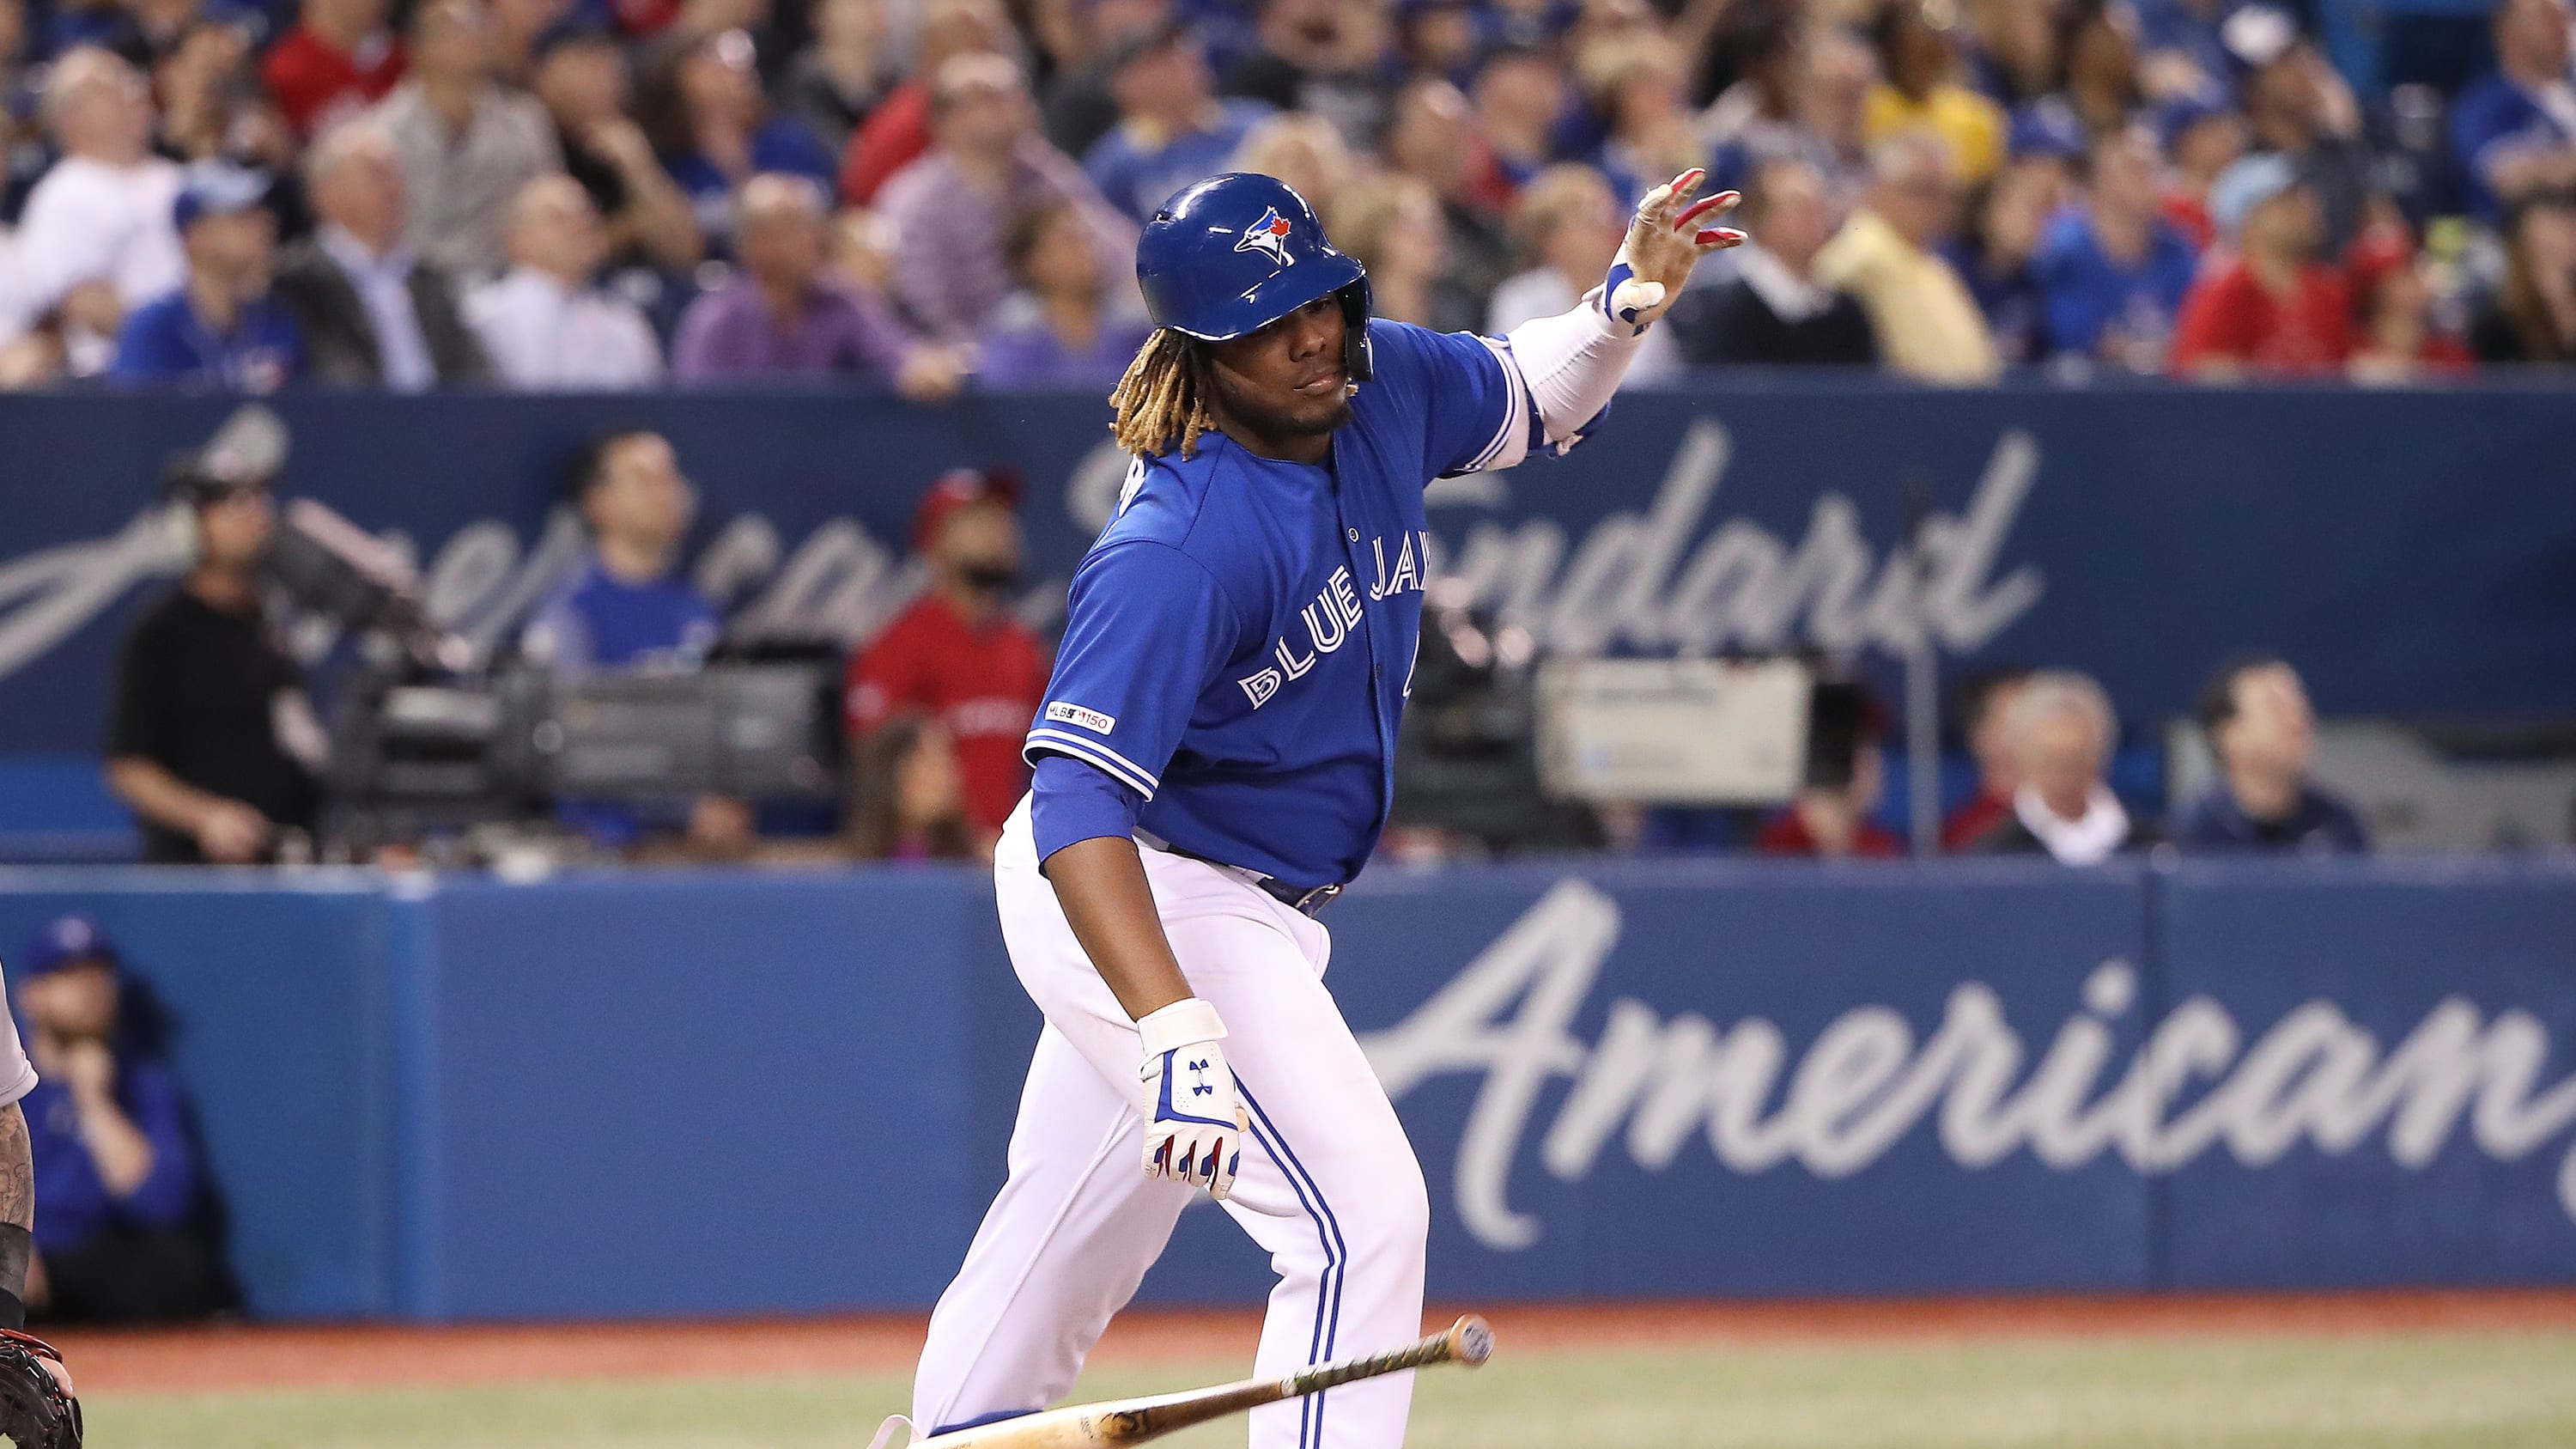 TORONTO, ON - MAY 23: Vladimir Guerrero Jr. #27 of the Toronto Blue Jays reacts as he flies out in the third inning during MLB game action against the Boston Red Sox at Rogers Centre on May 23, 2019 in Toronto, Canada. (Photo by Tom Szczerbowski/Getty Images)